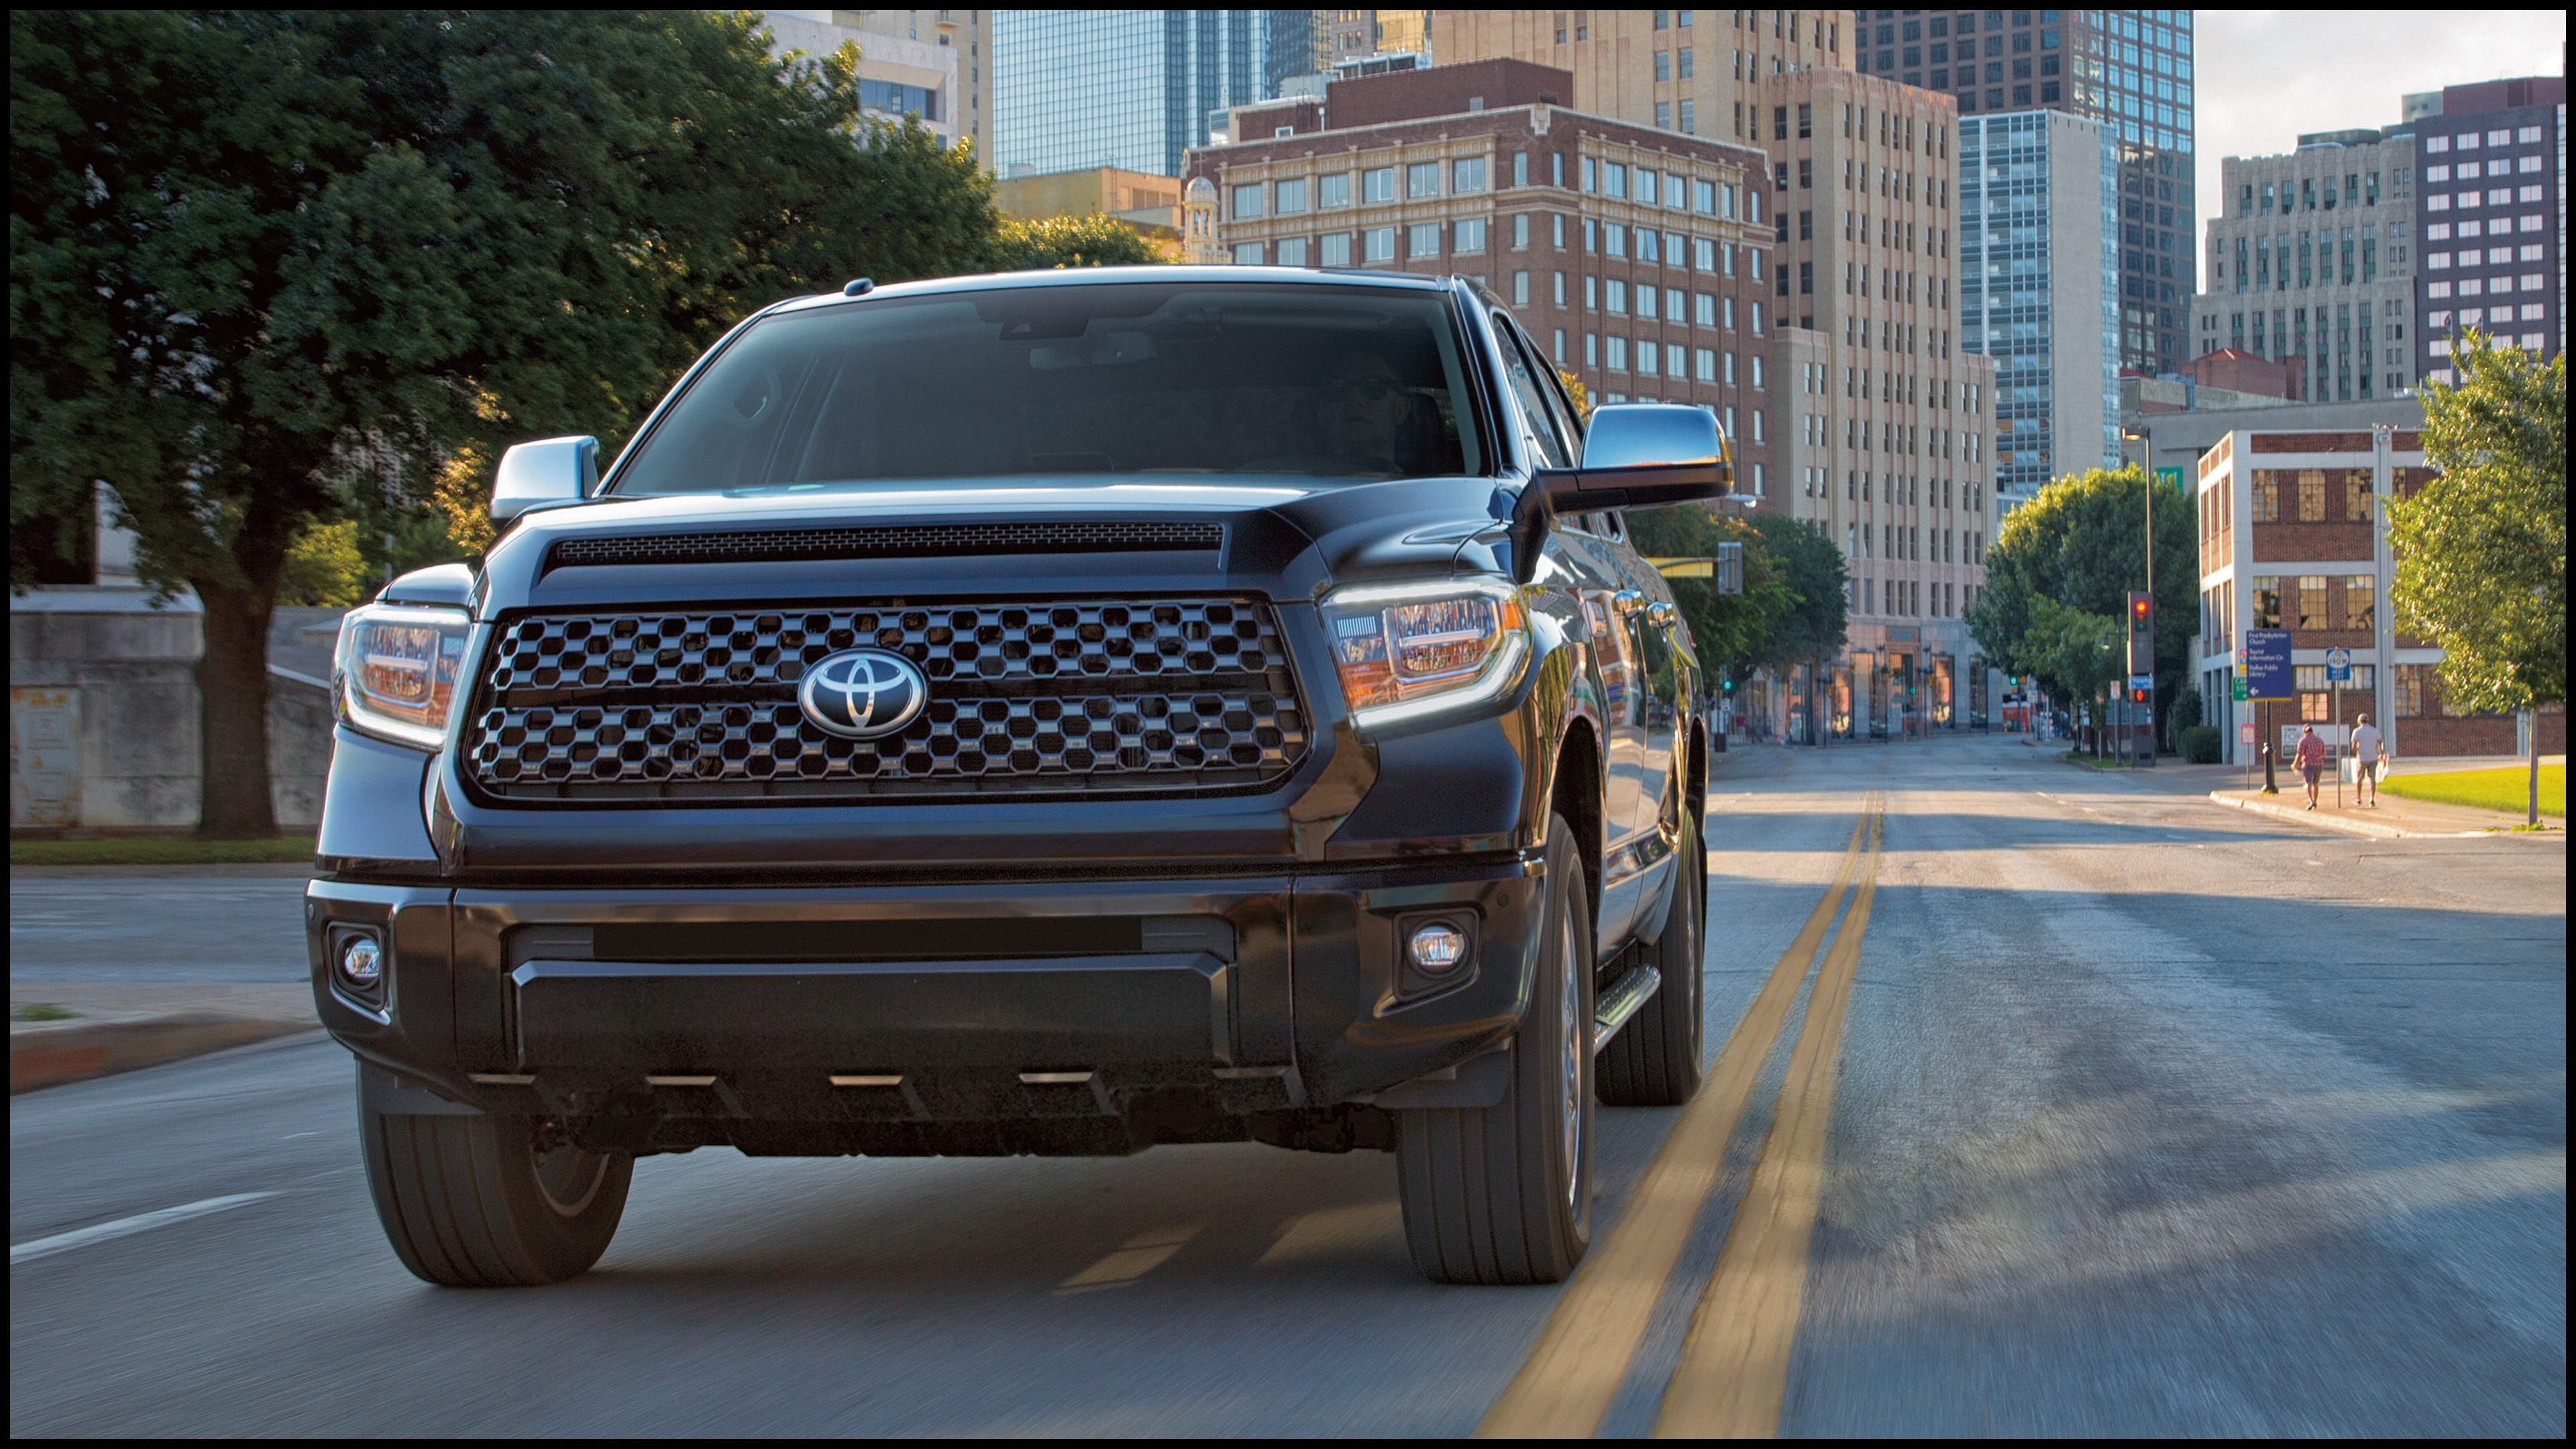 New Toyota Tundra Sale Now at Hoselton Toyota